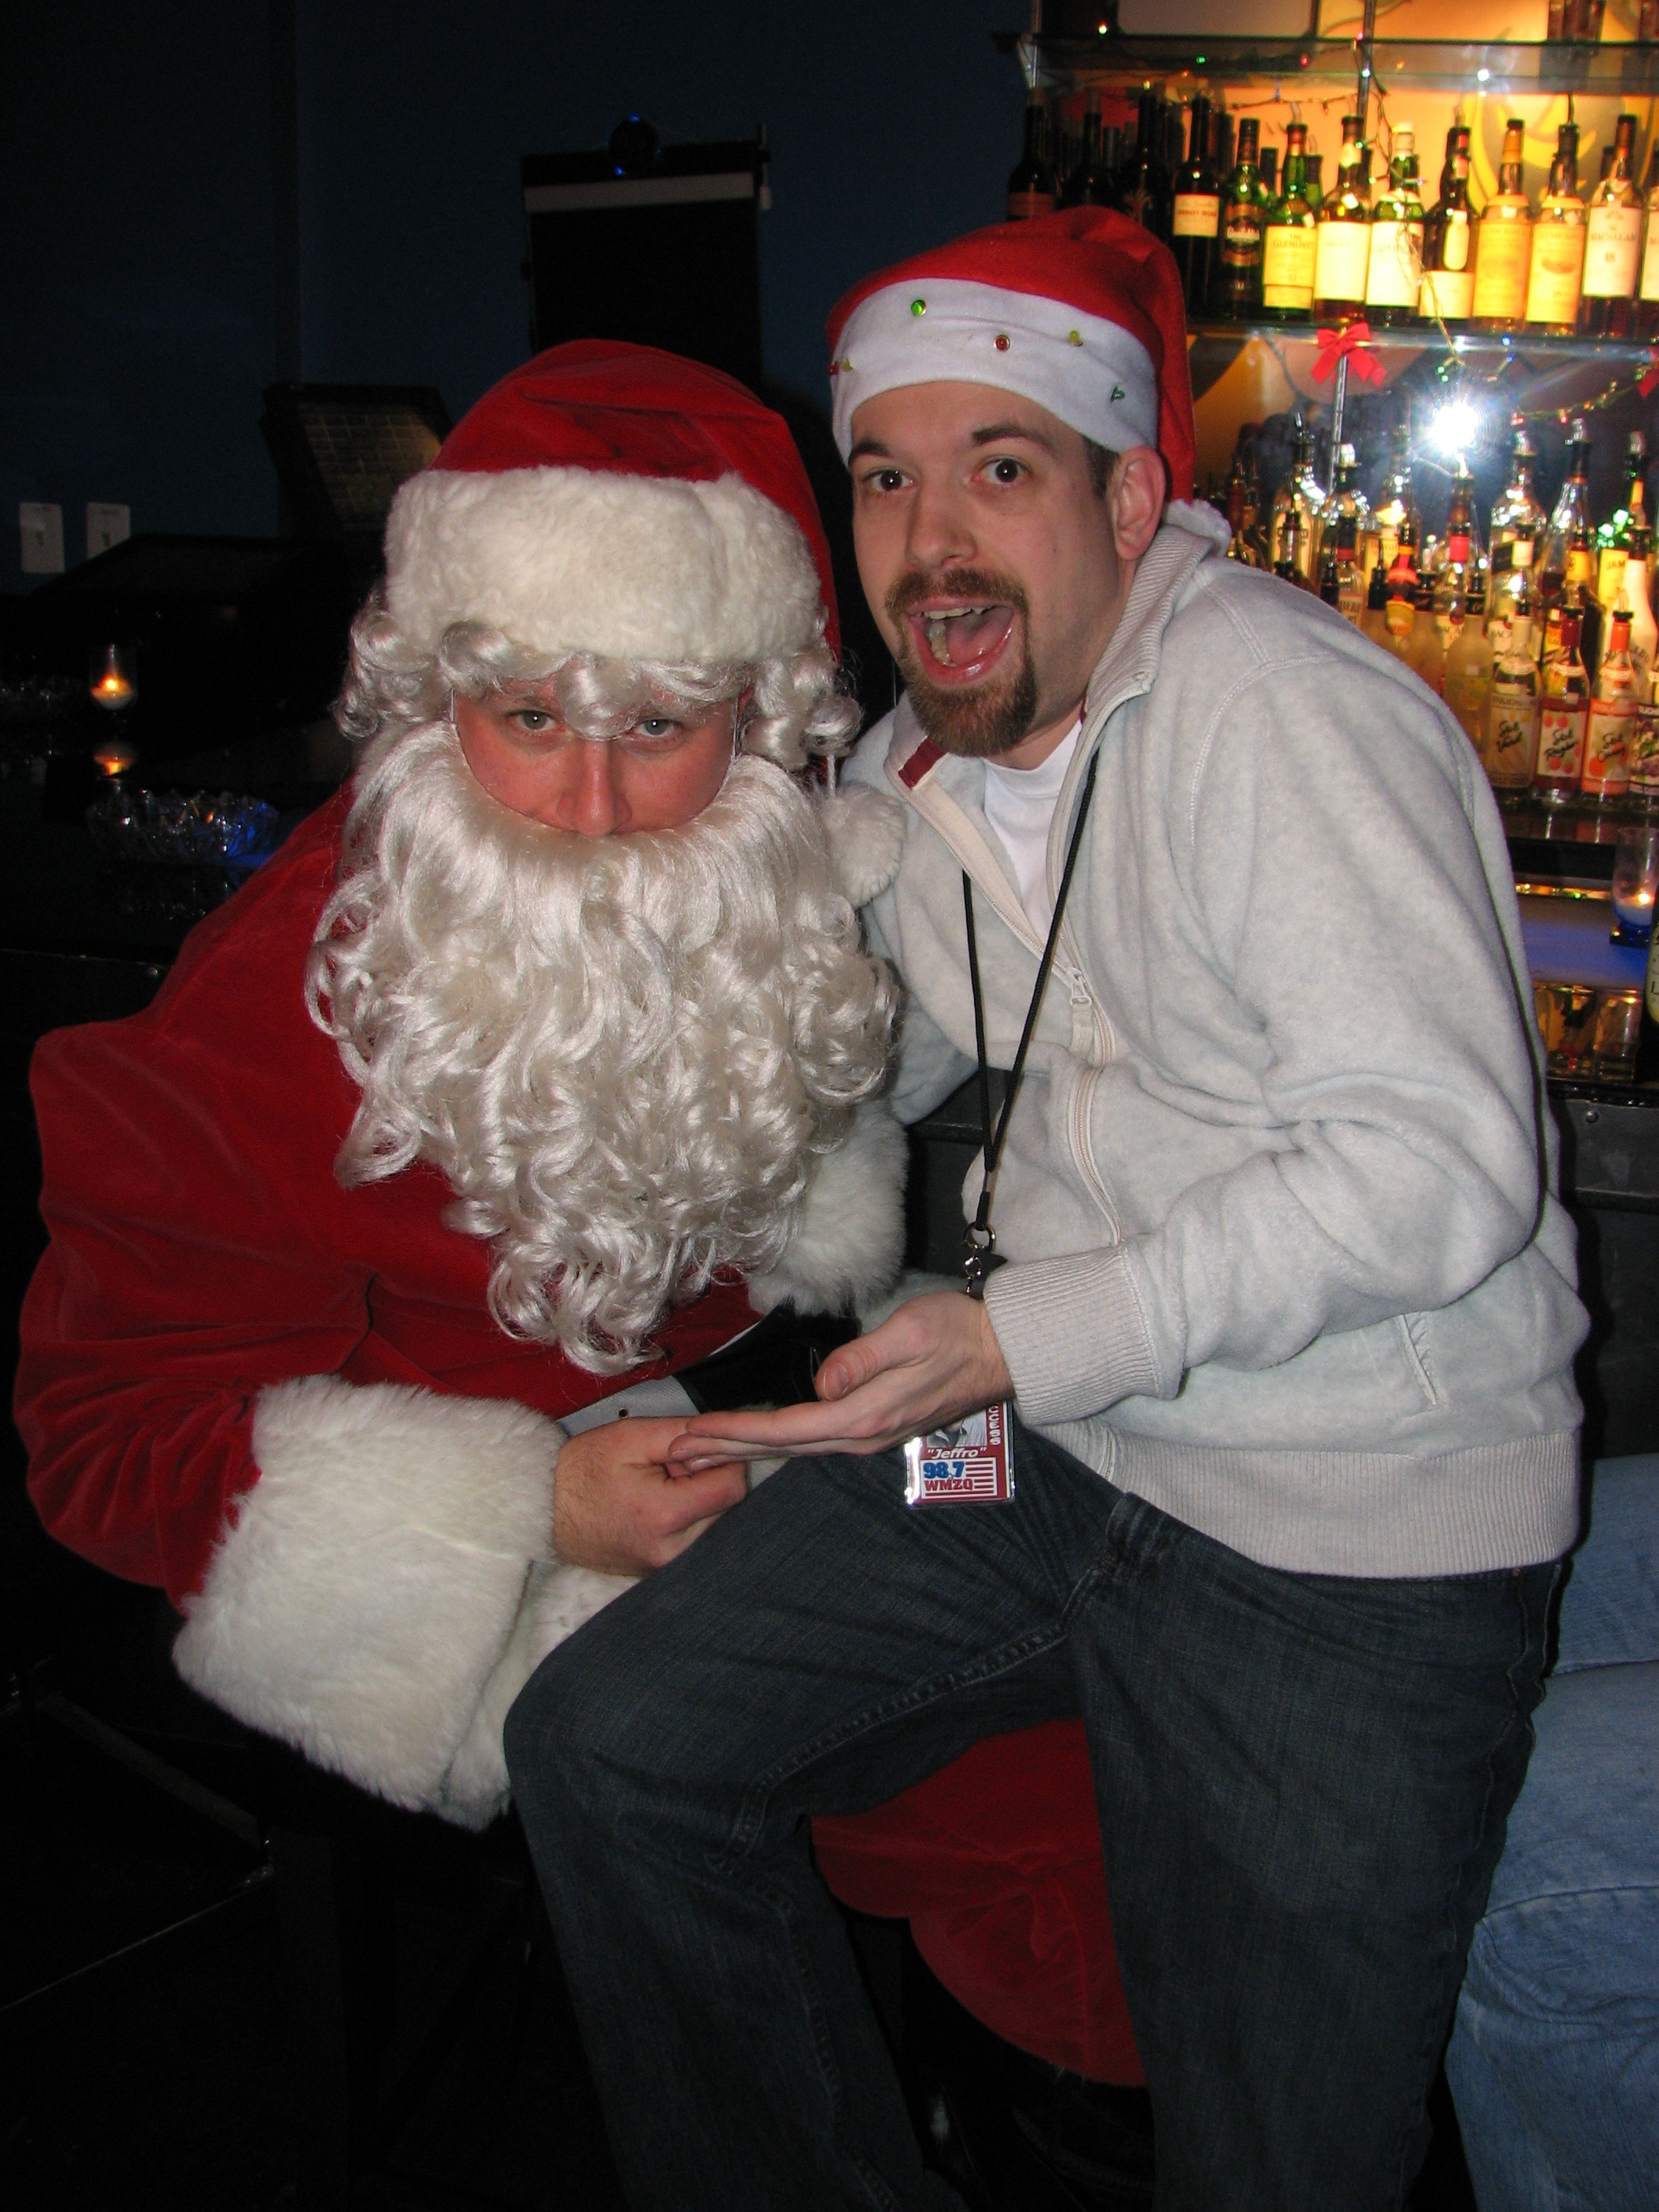 Though, he made a great Santa!